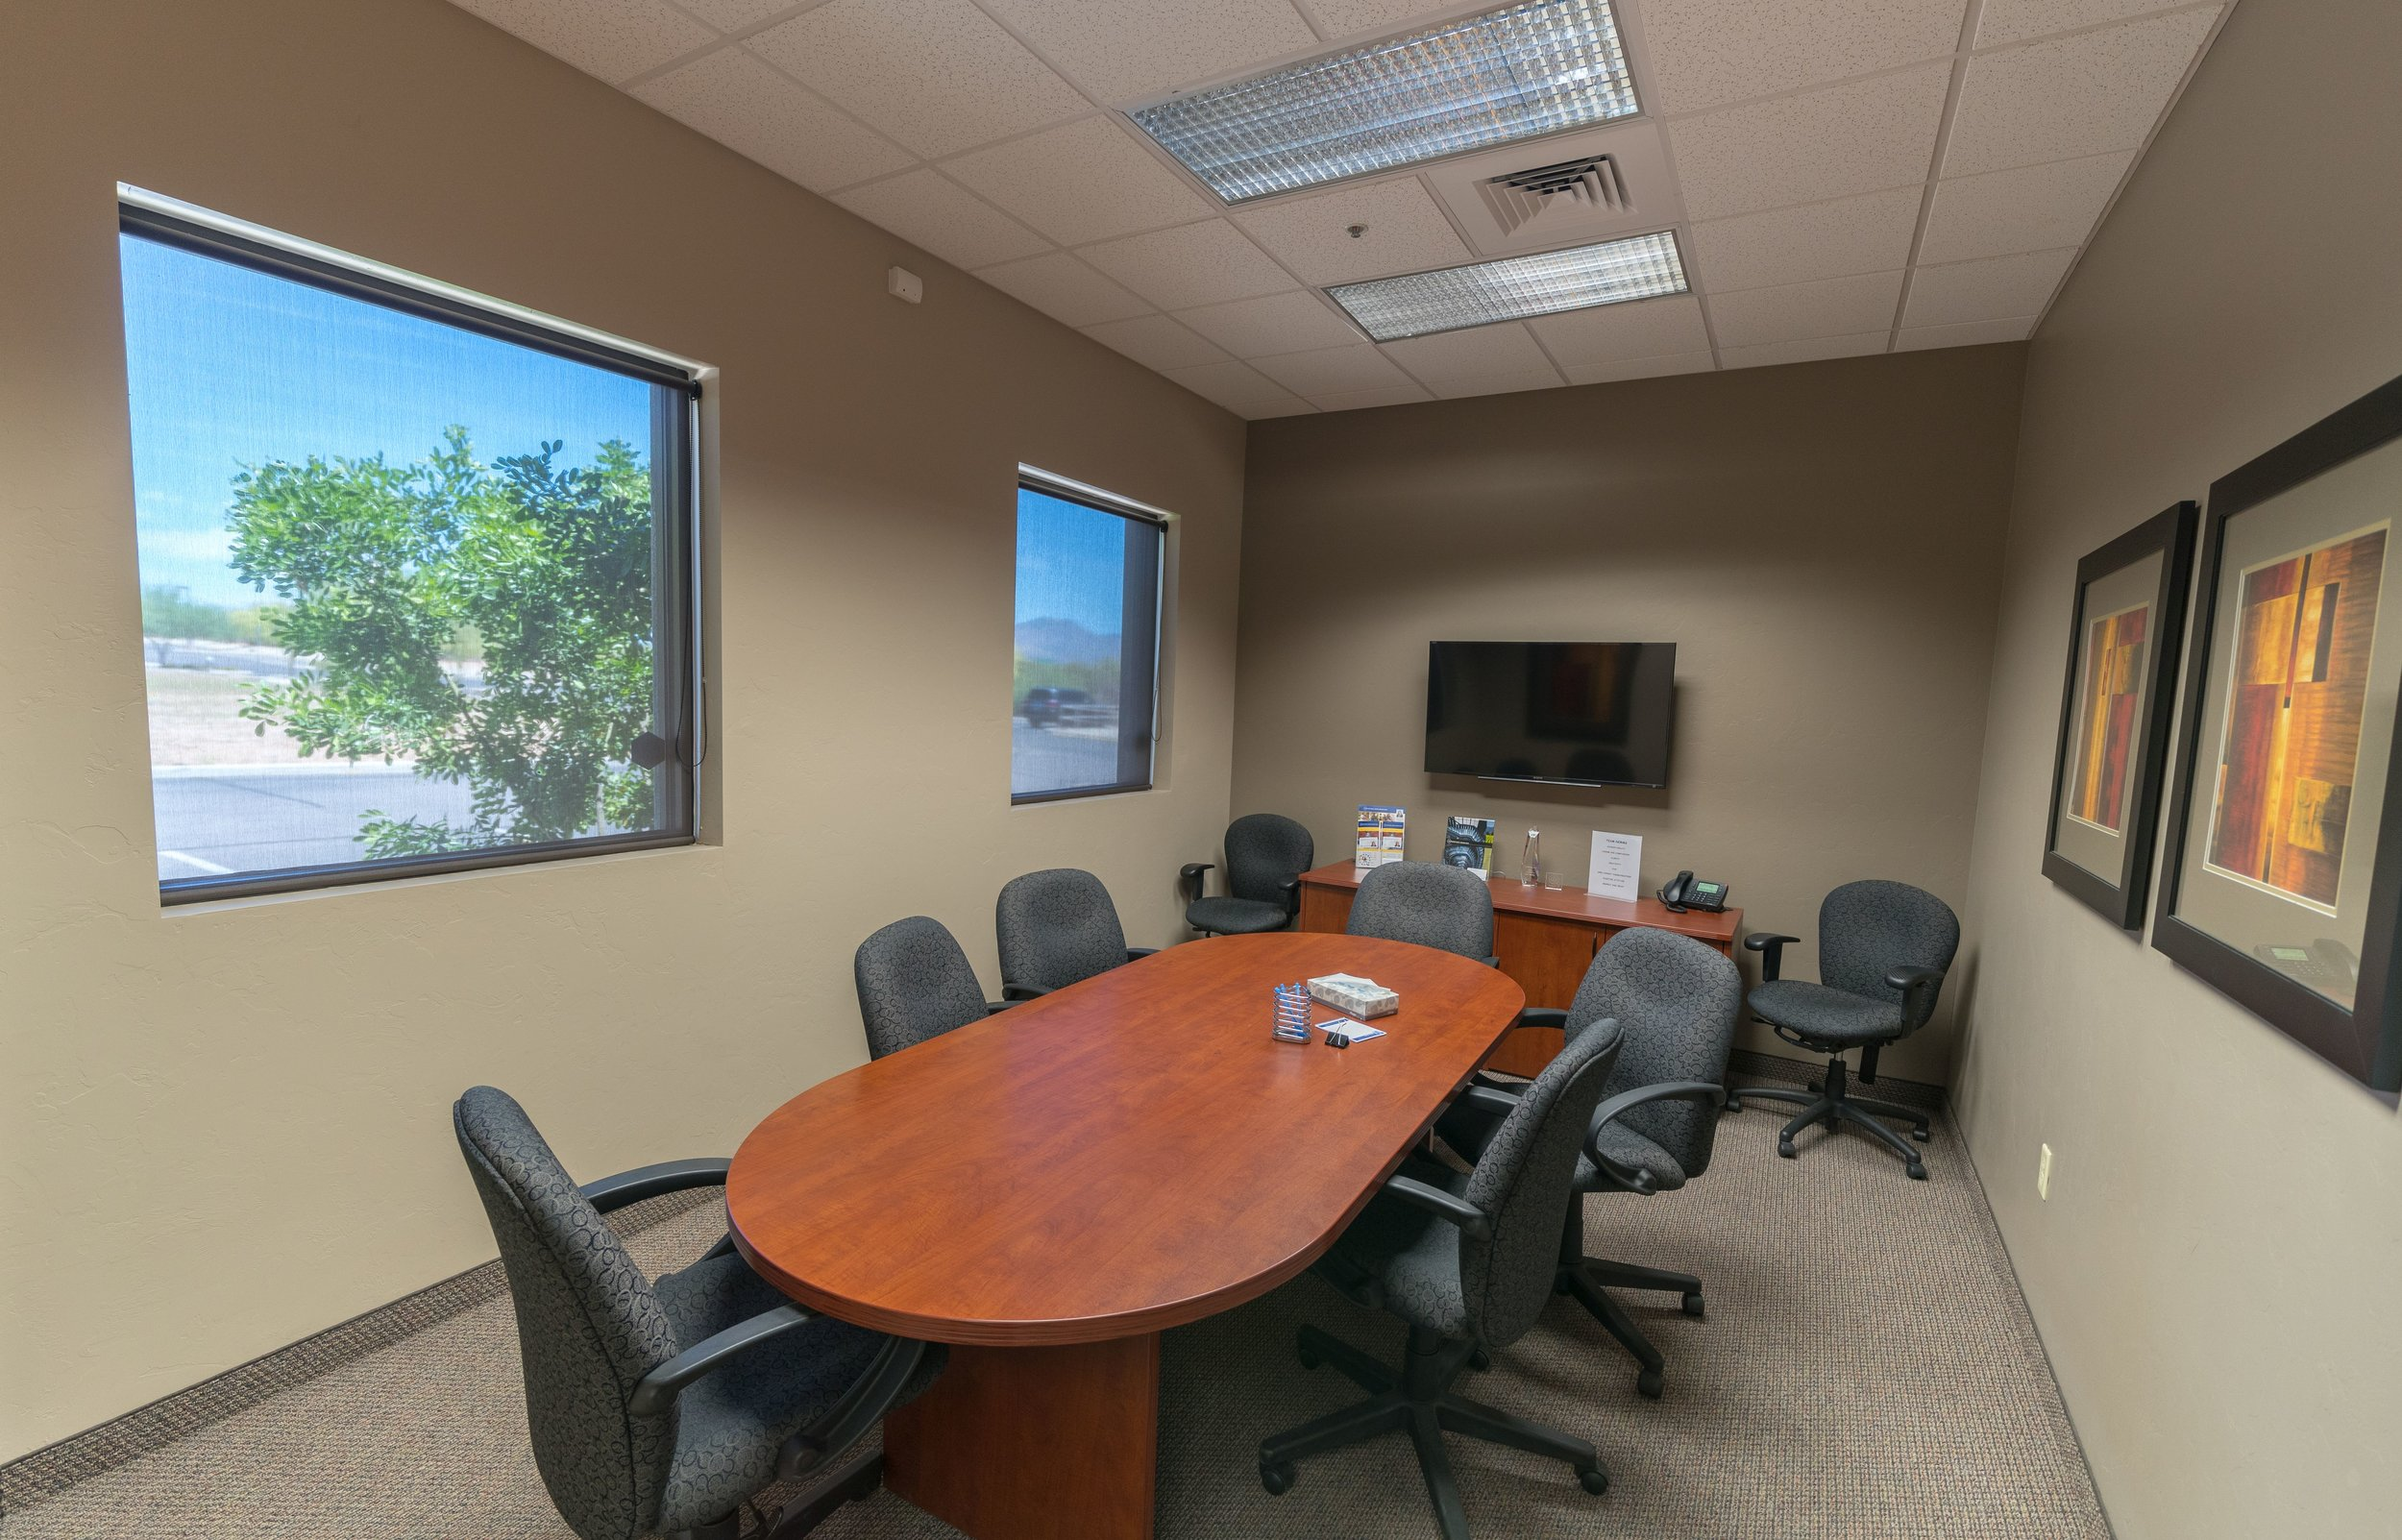 2506 E Vistoso Commerce Loop conference room.jpg